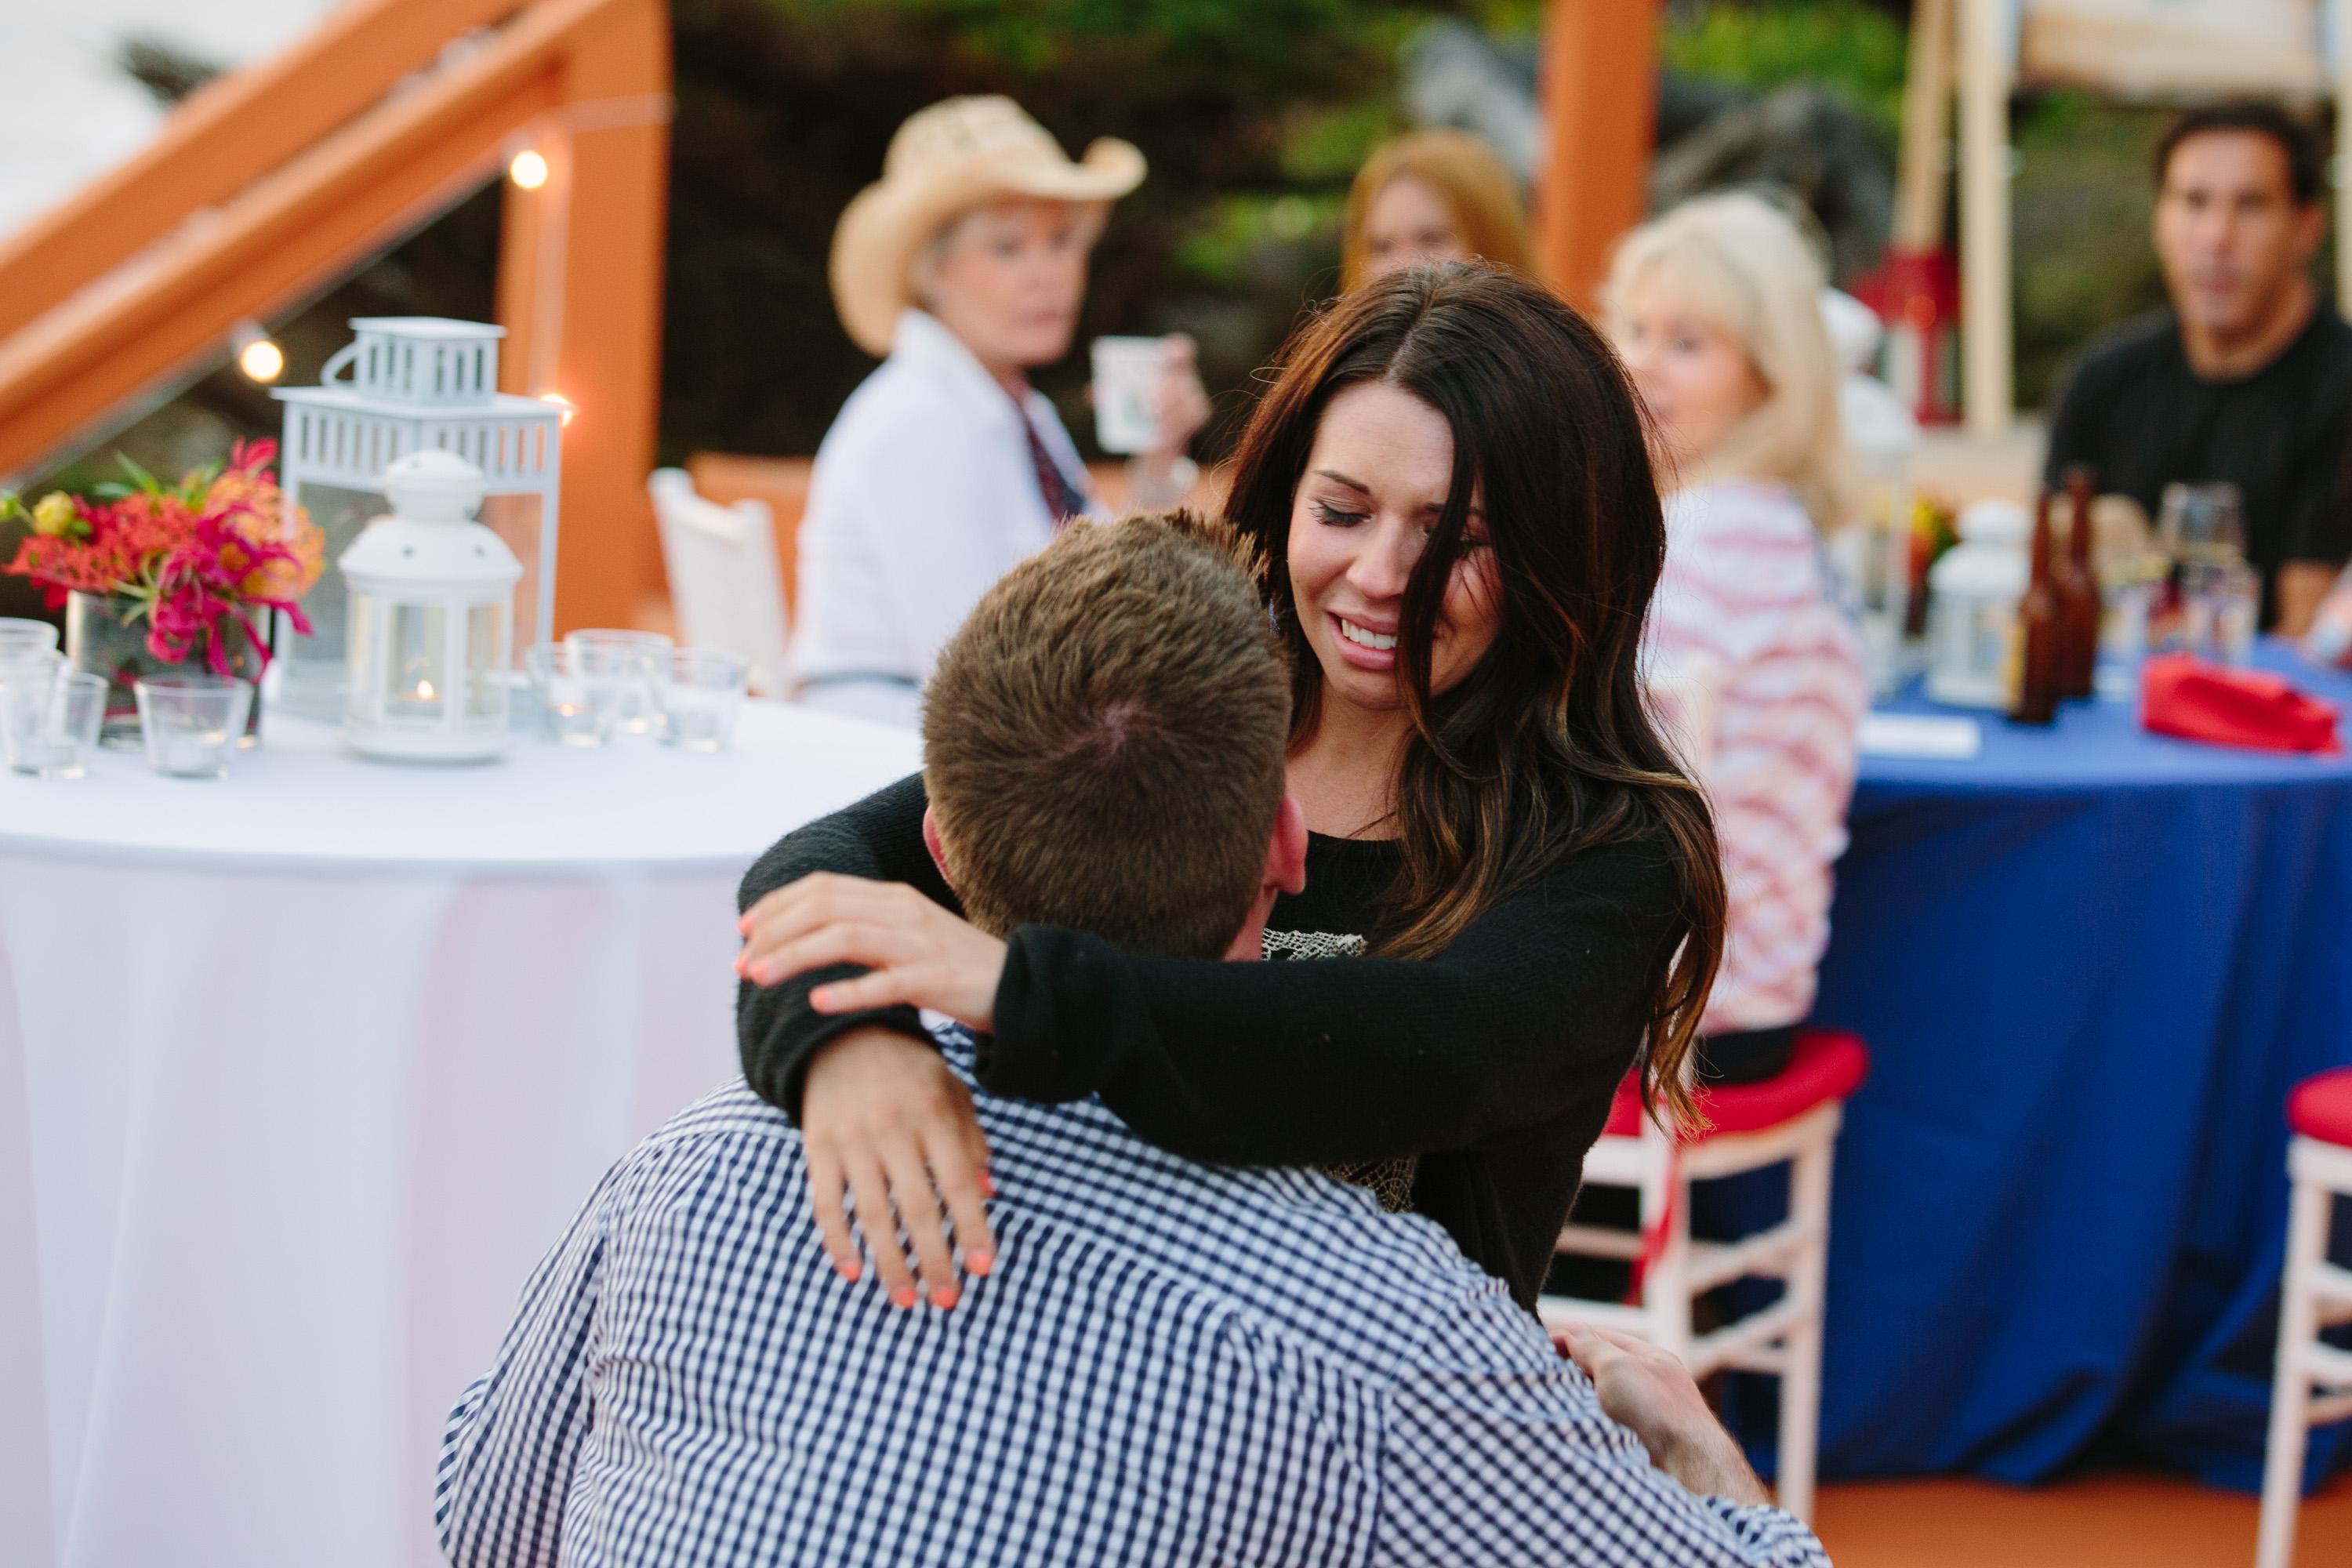 Surprise Marriage Proposal on Fourth of July016